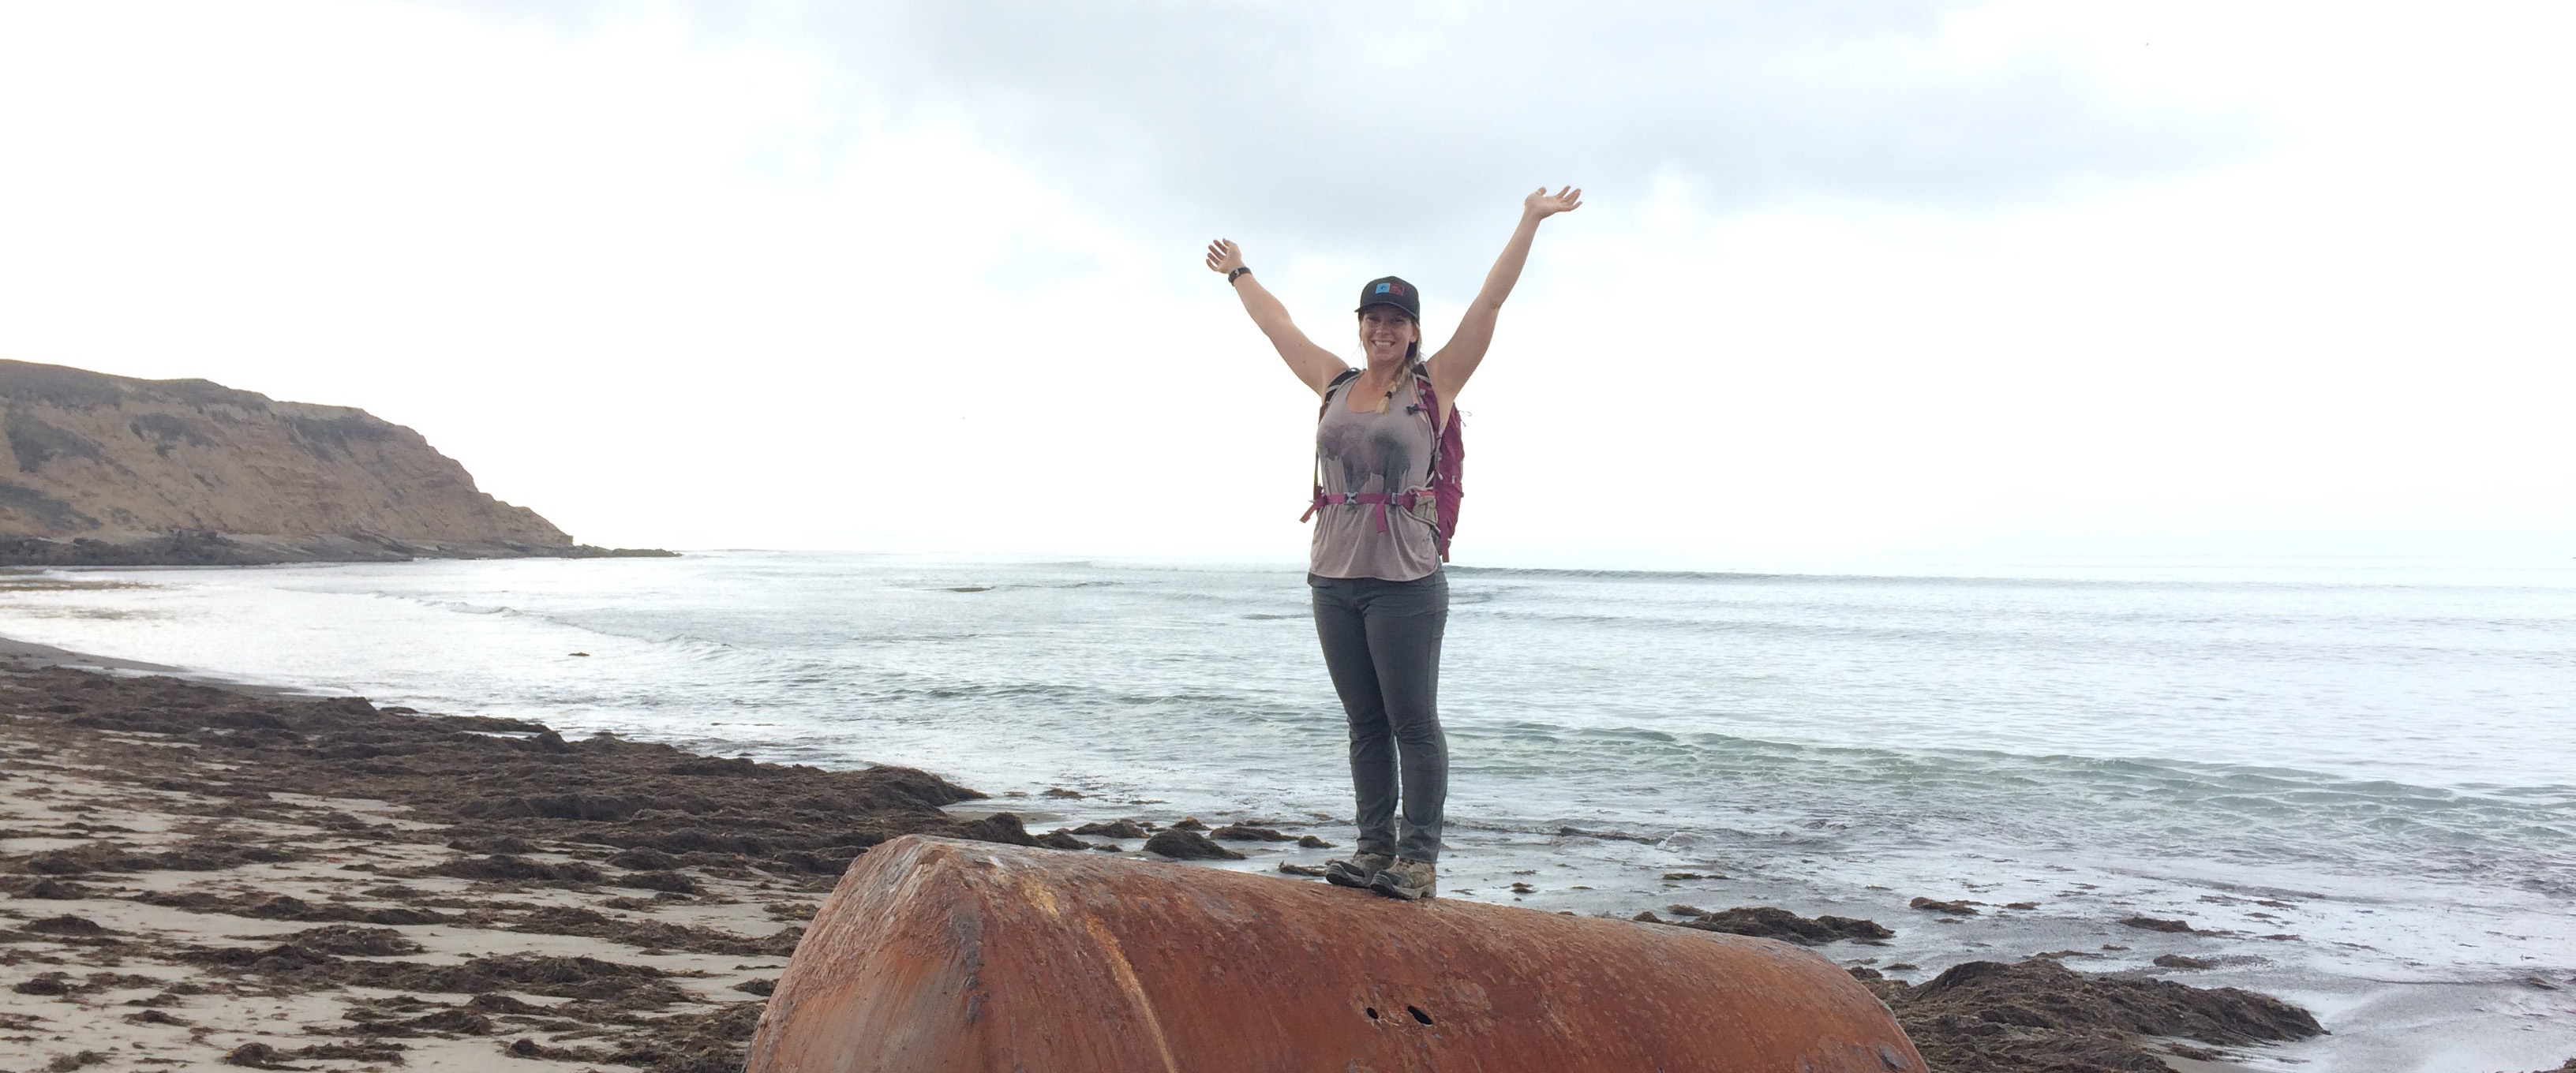 Michaela standing on a large metal drum on a beach